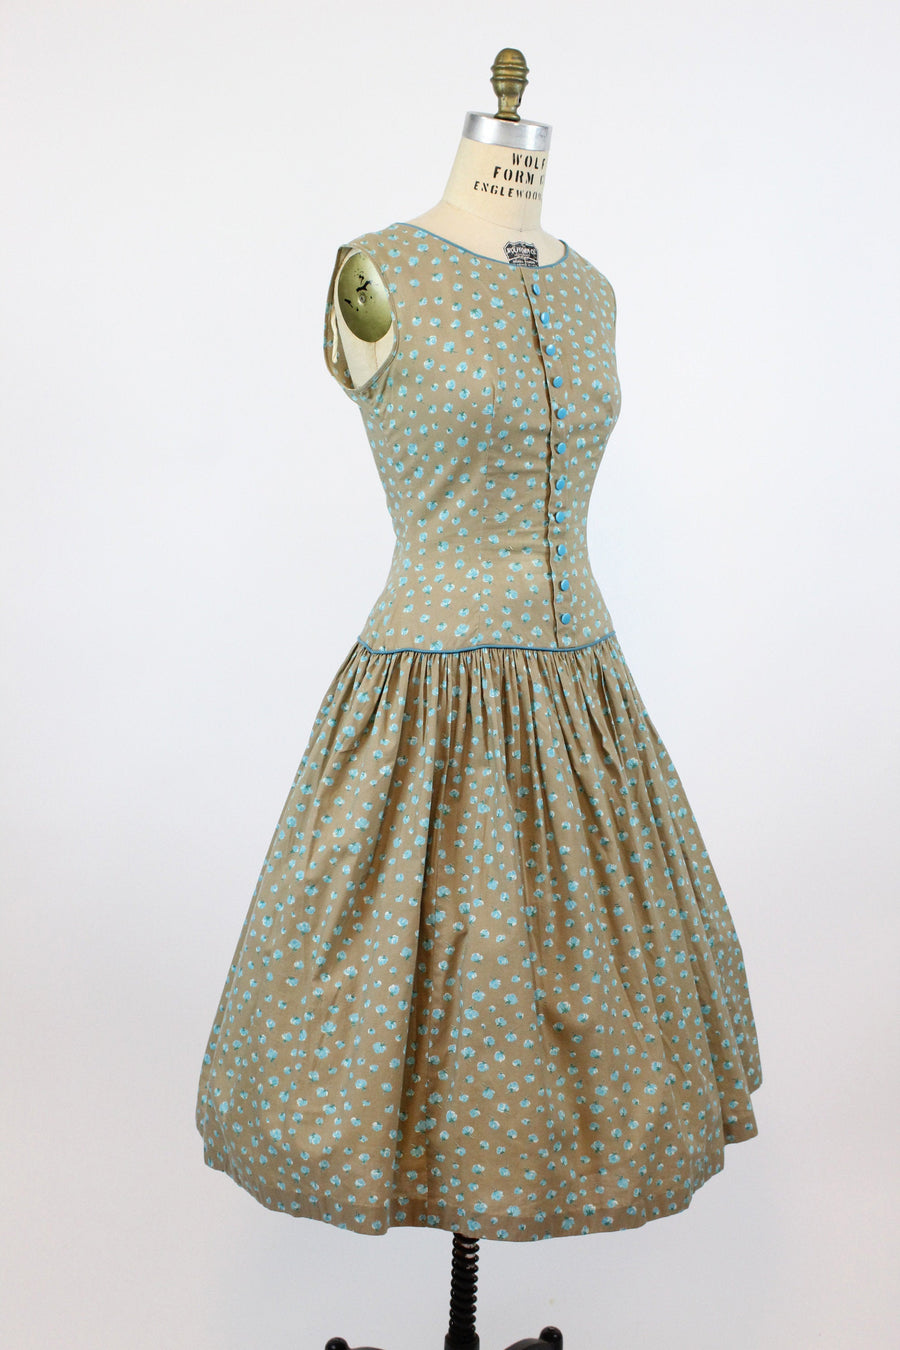 1950s rose print cotton dress small medium | vintage full skirt dress | new in